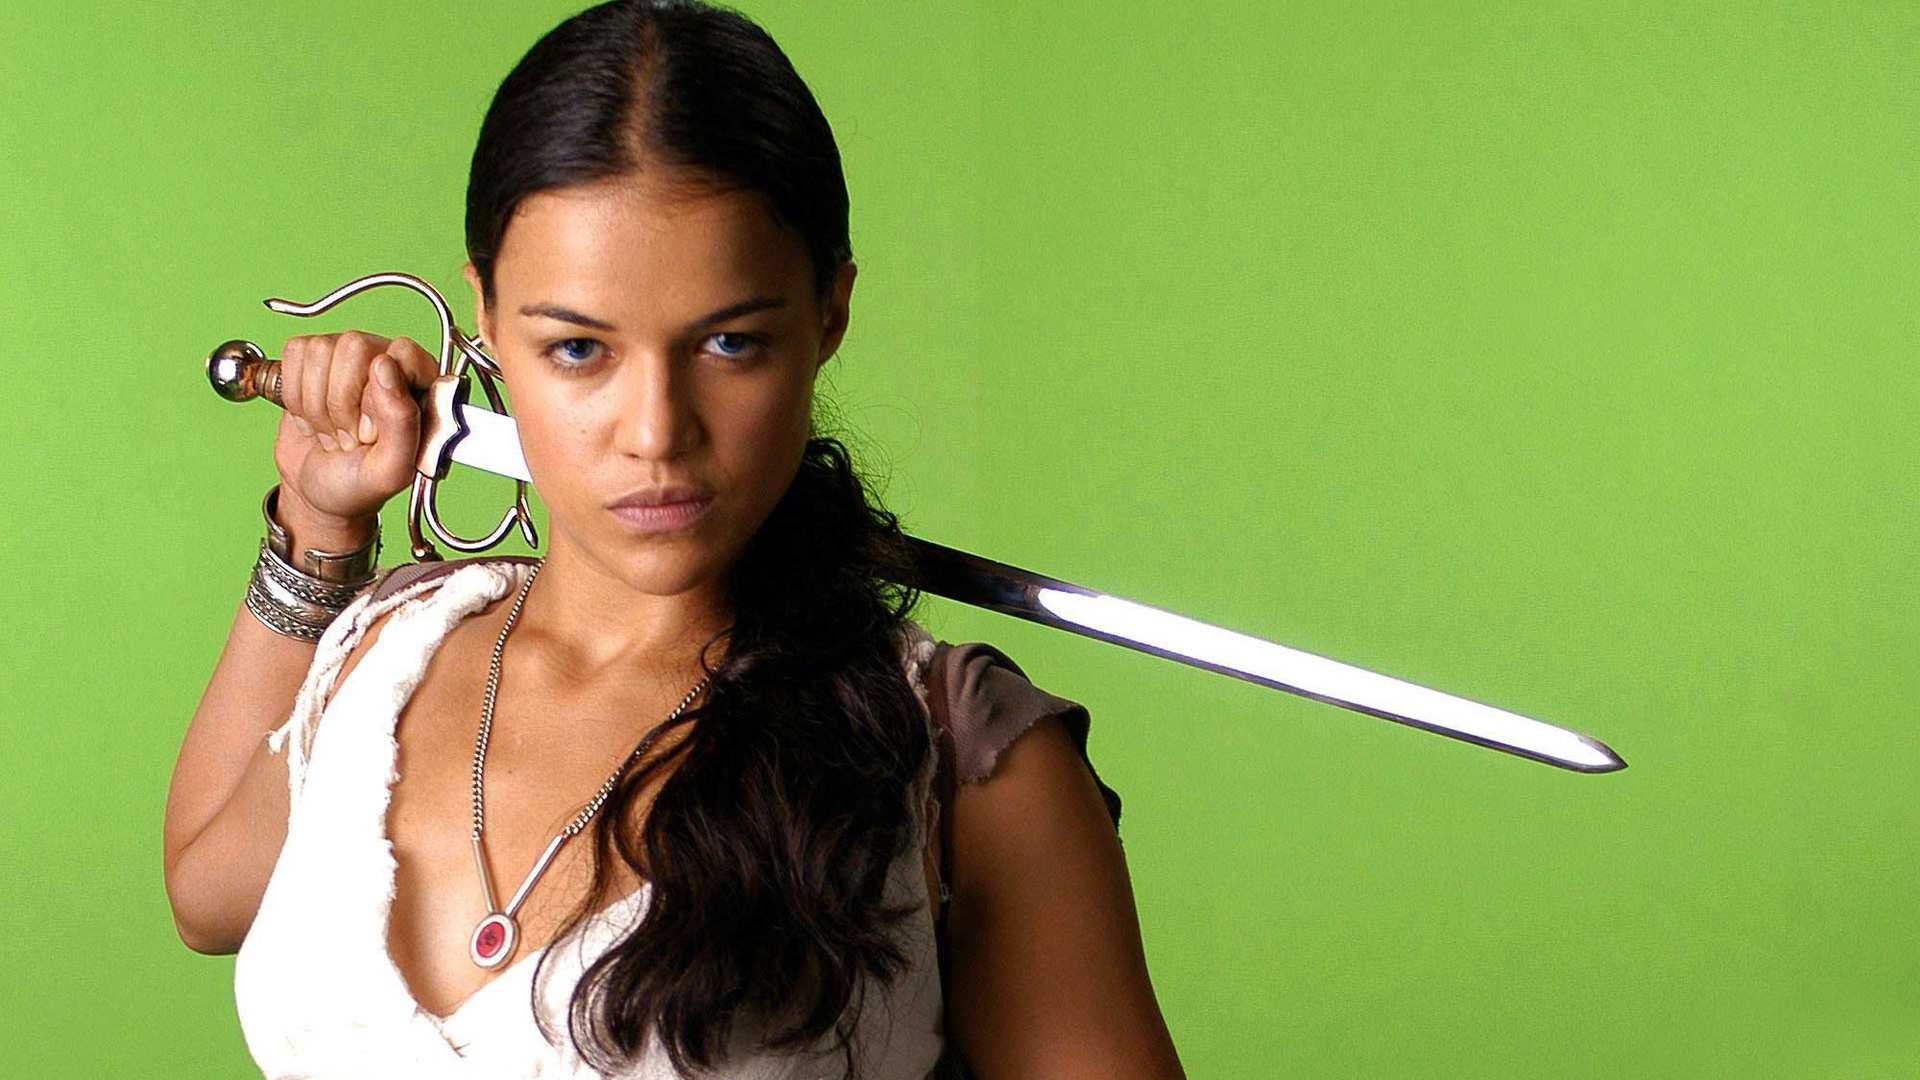 Sexy Michelle Rodriguez New HD Wallpapers   All HD Wallpapers 1920x1080